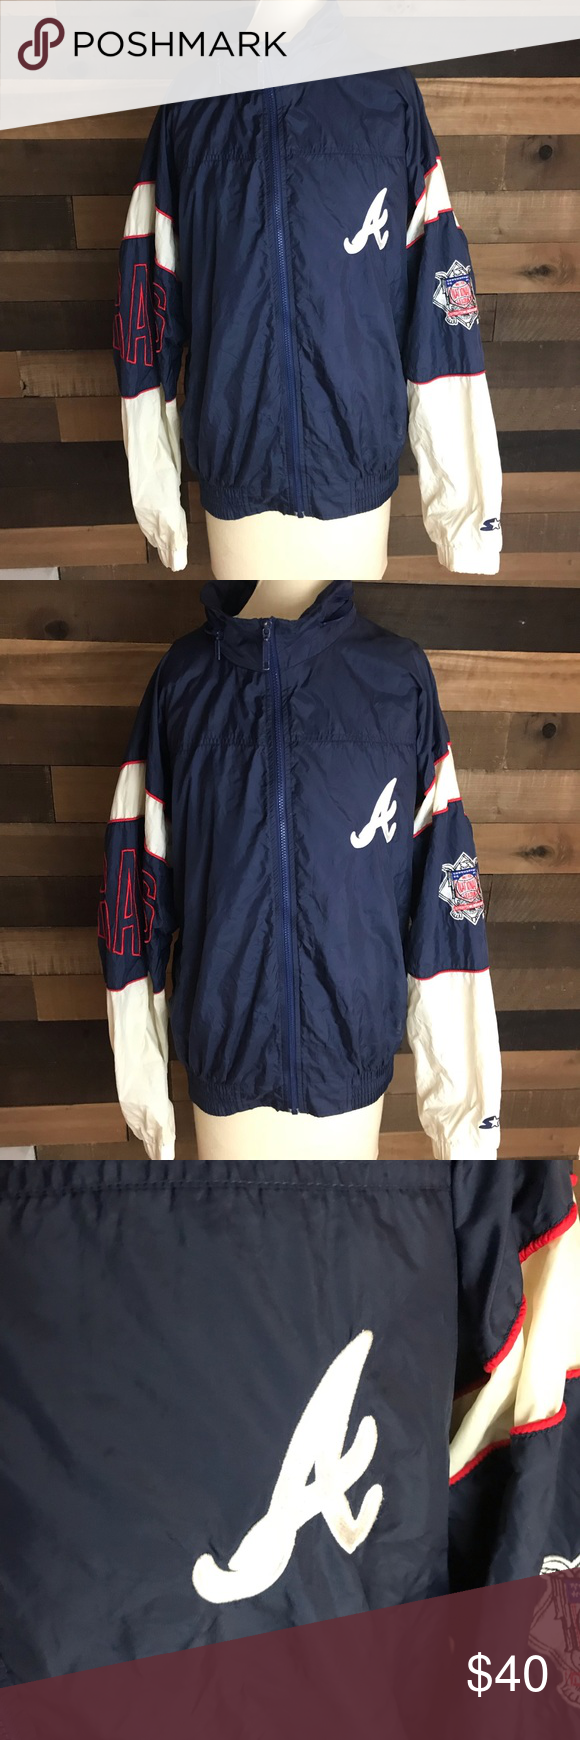 Vintage Atlanta Braves Starter Rain Jacket Large Jackets Light Jacket Atlanta Braves